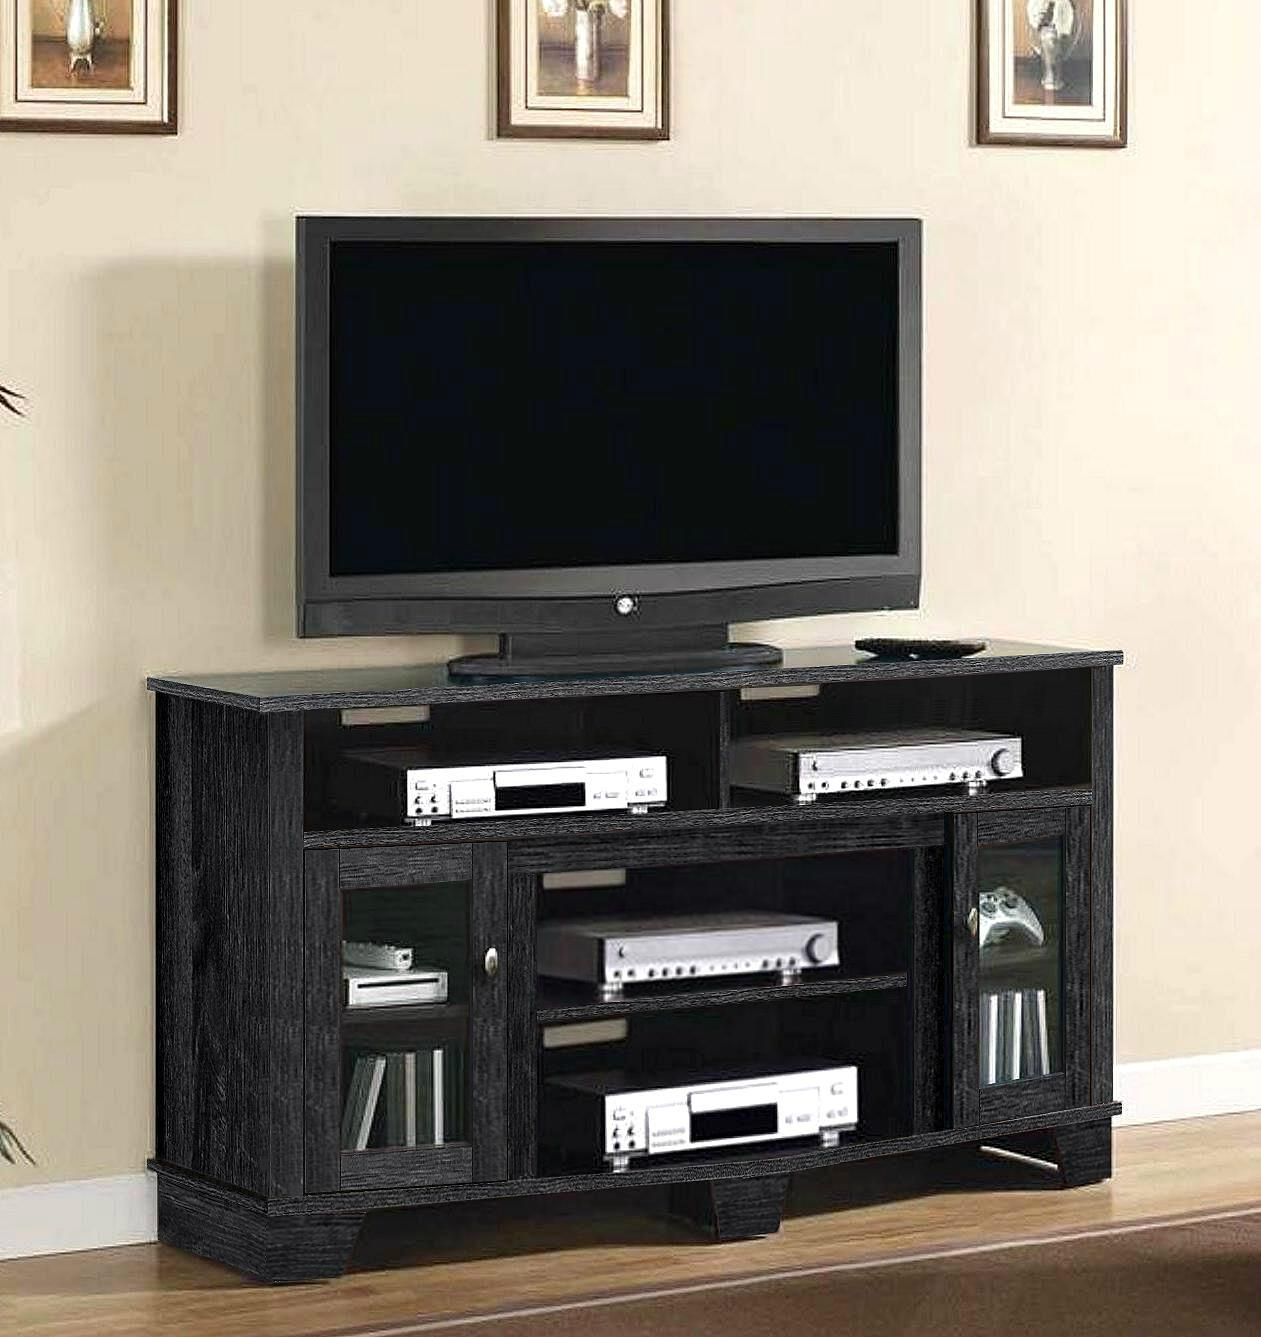 60 Inch Charcoal Grey Modern Tall Tv Stand Furniture Wd 3912 Mighty Taiwan Manufacturer